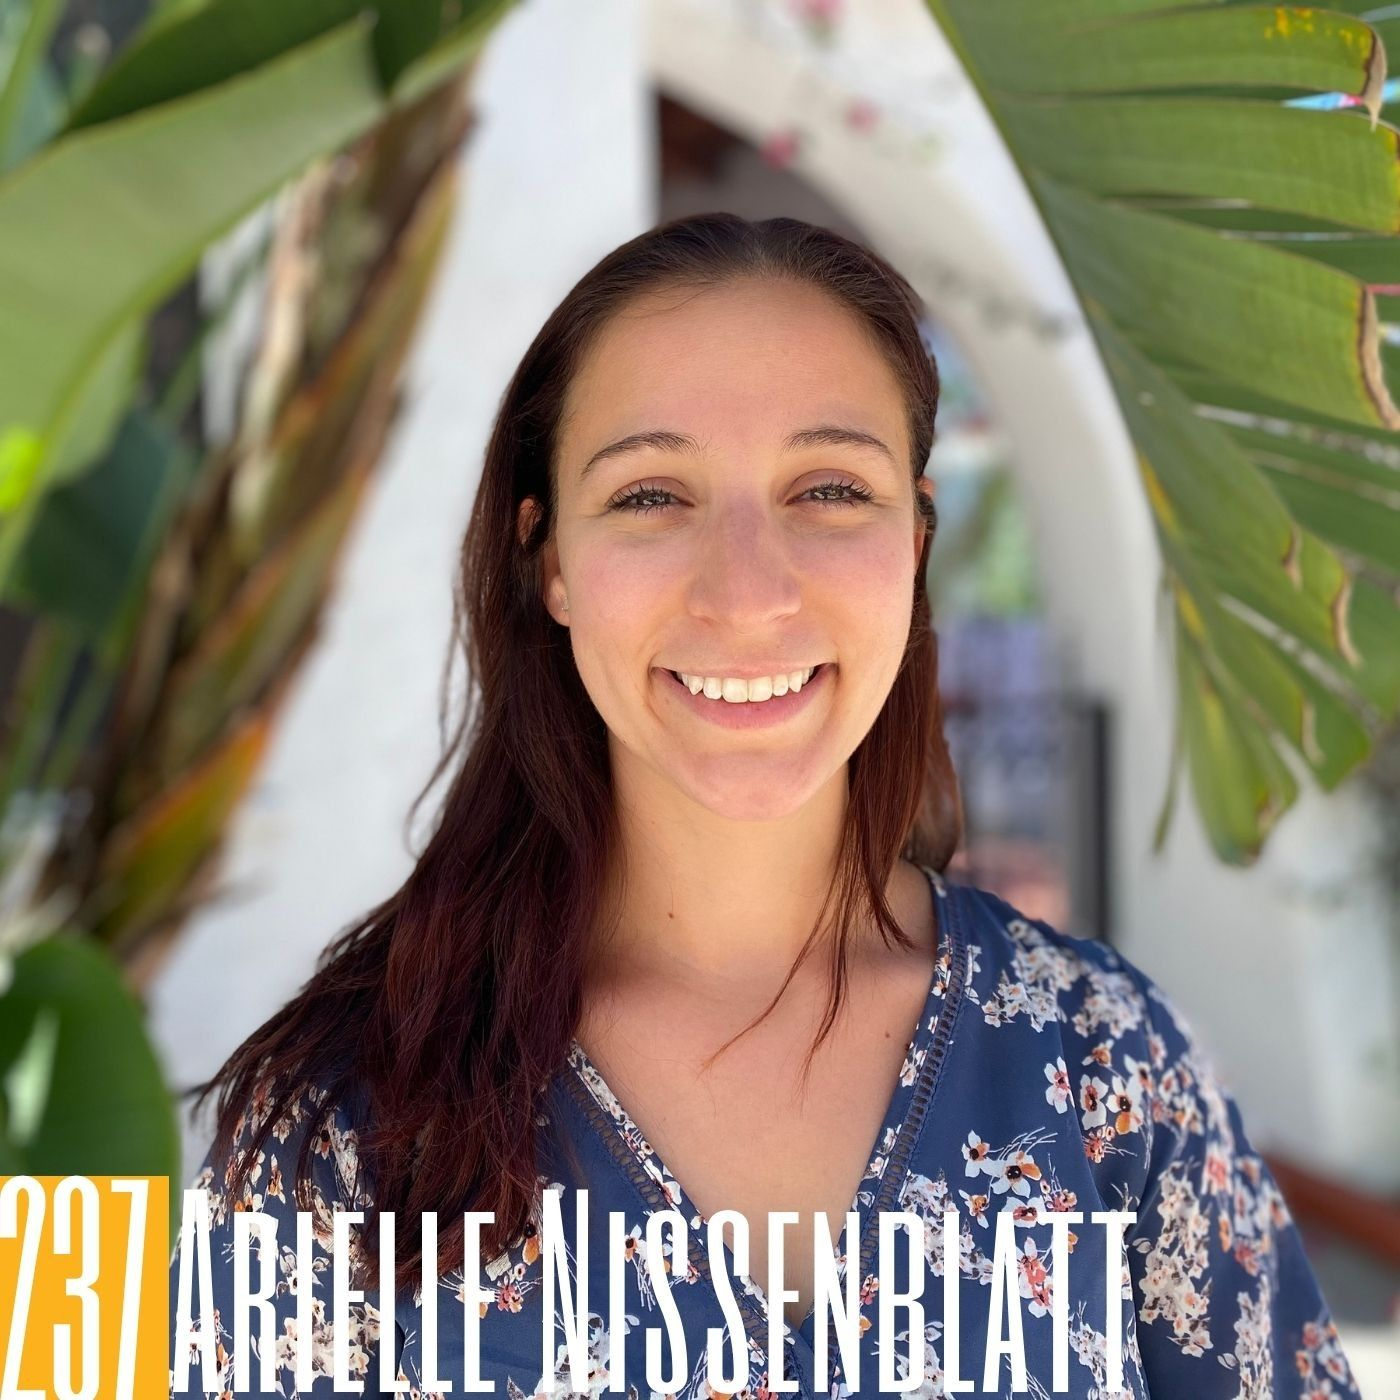 237 Arielle Nissenblatt - Taking Imperfect Action